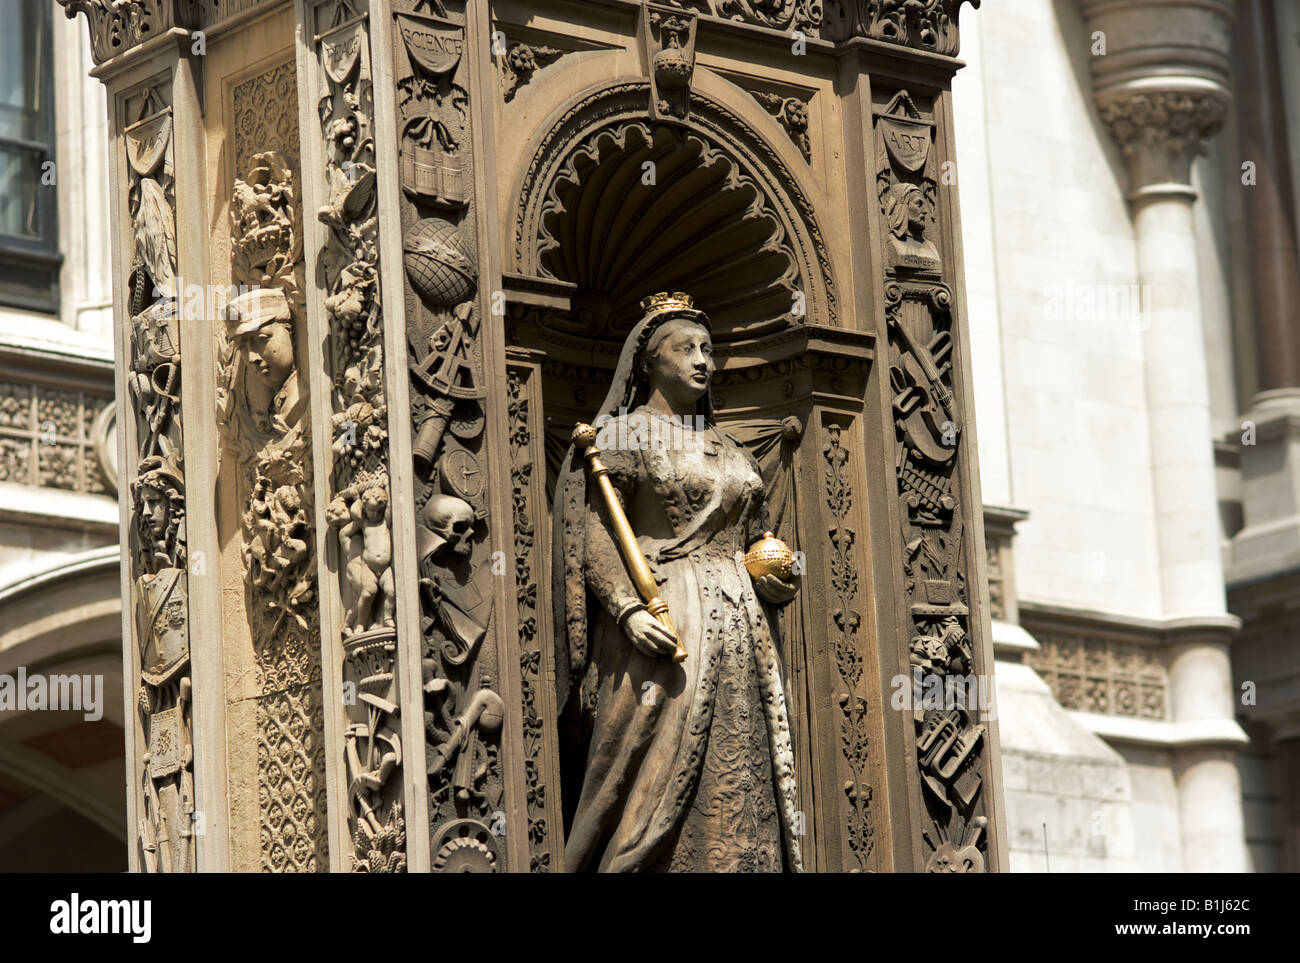 Bronze statue of Quenn Victoria on the Temple Bar monument in the middle of Fleet Street marking the western edge - Stock Image